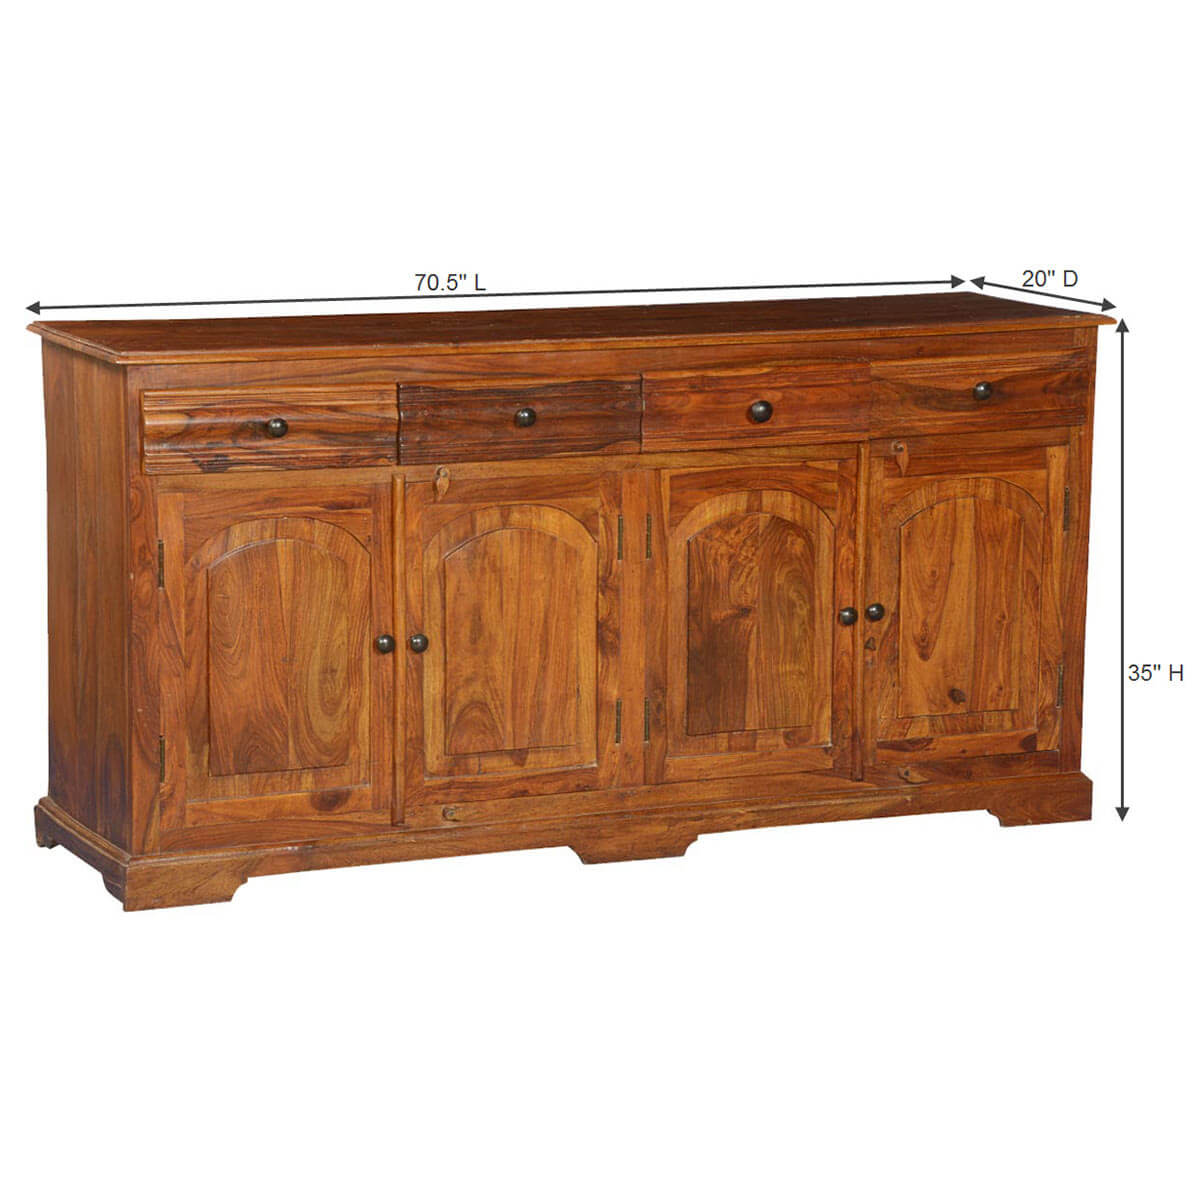 Early american solid wood drawer sideboard